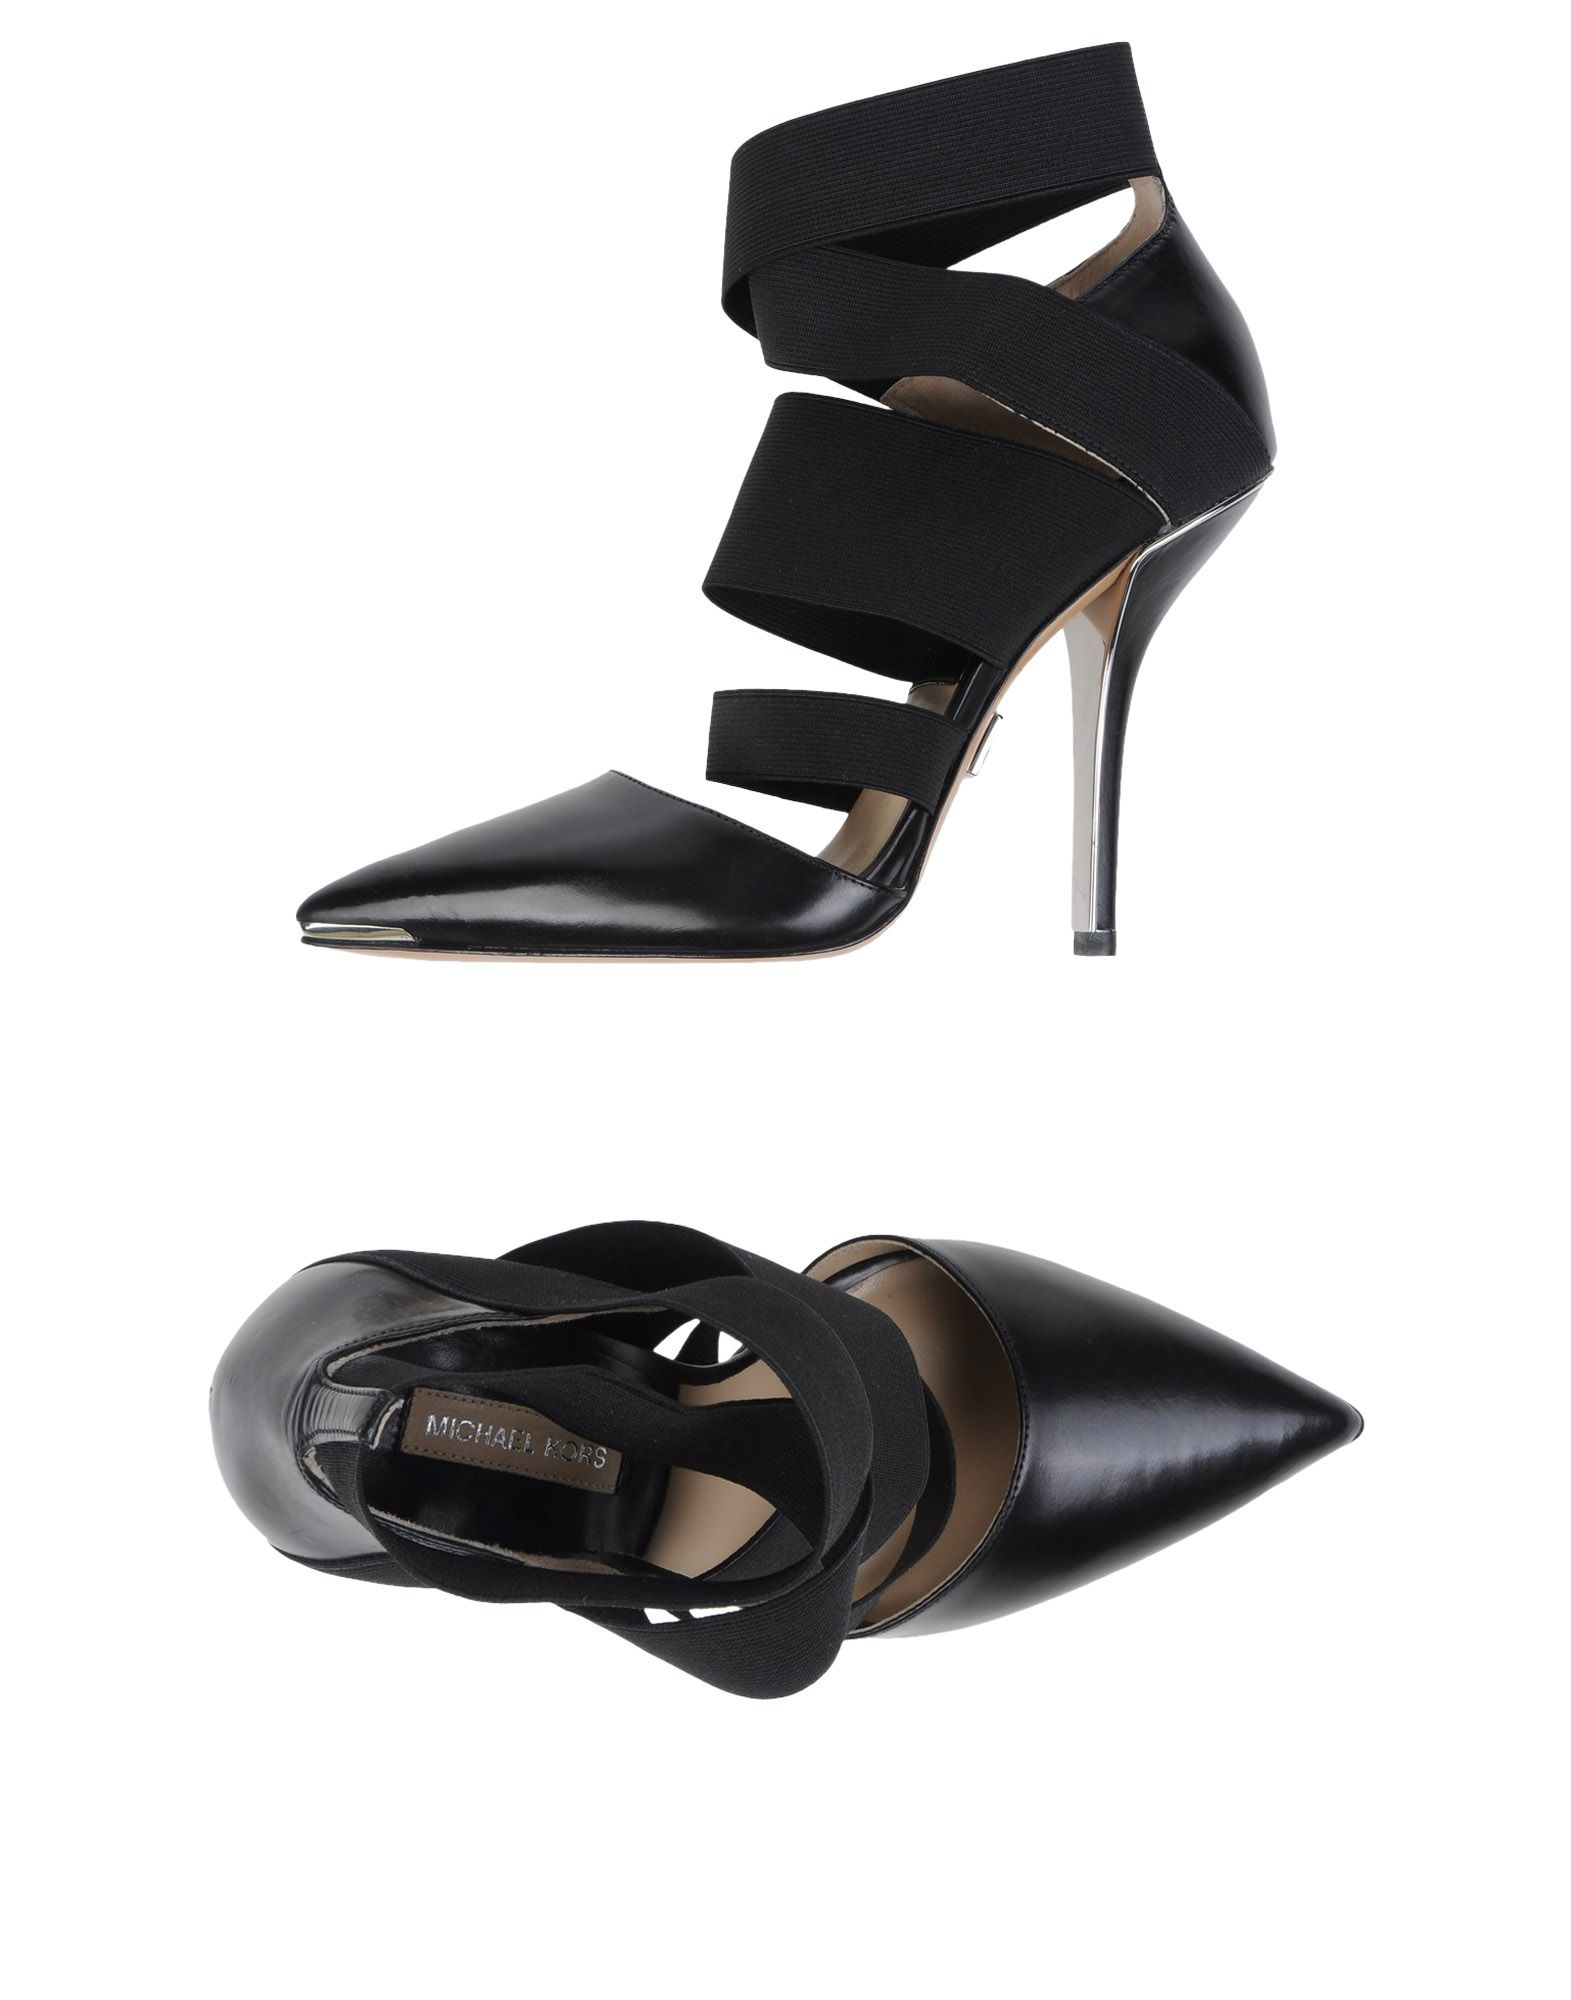 michael kors black and white shoes myideasbedroom